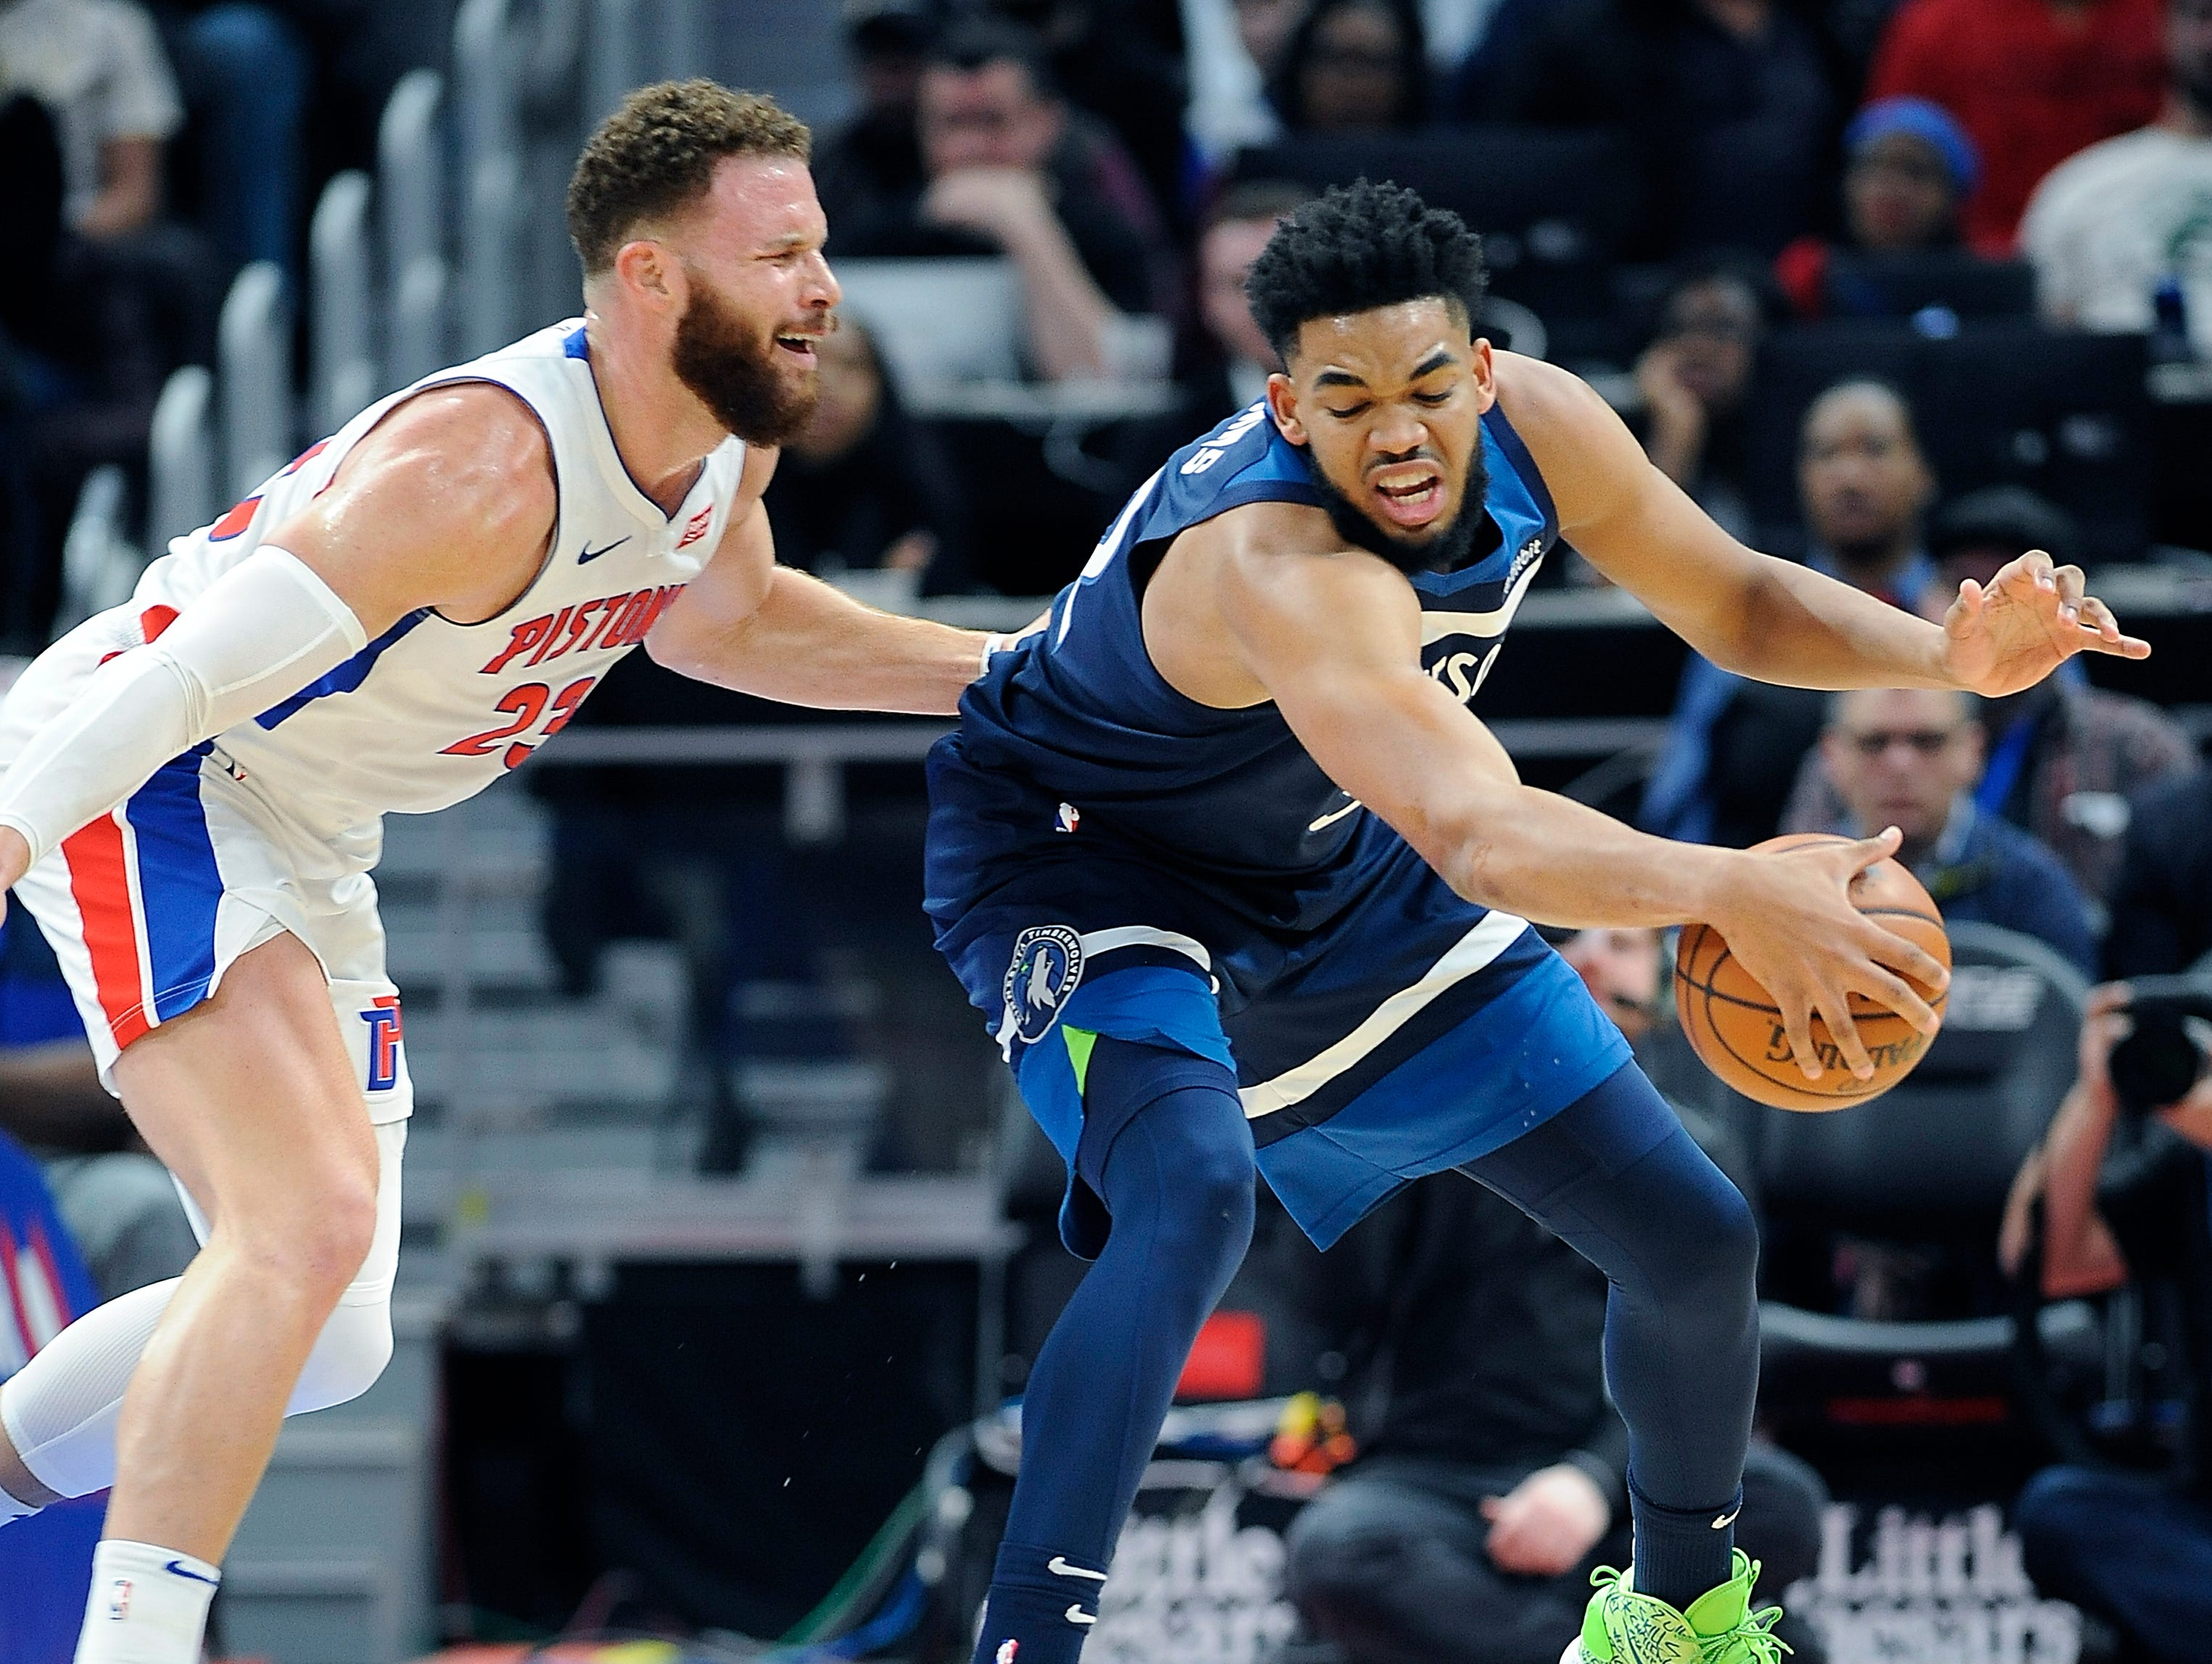 Pistons' Blake Griffin defends the Timberwolves' Karl-Anthony Towns in the first quarter.